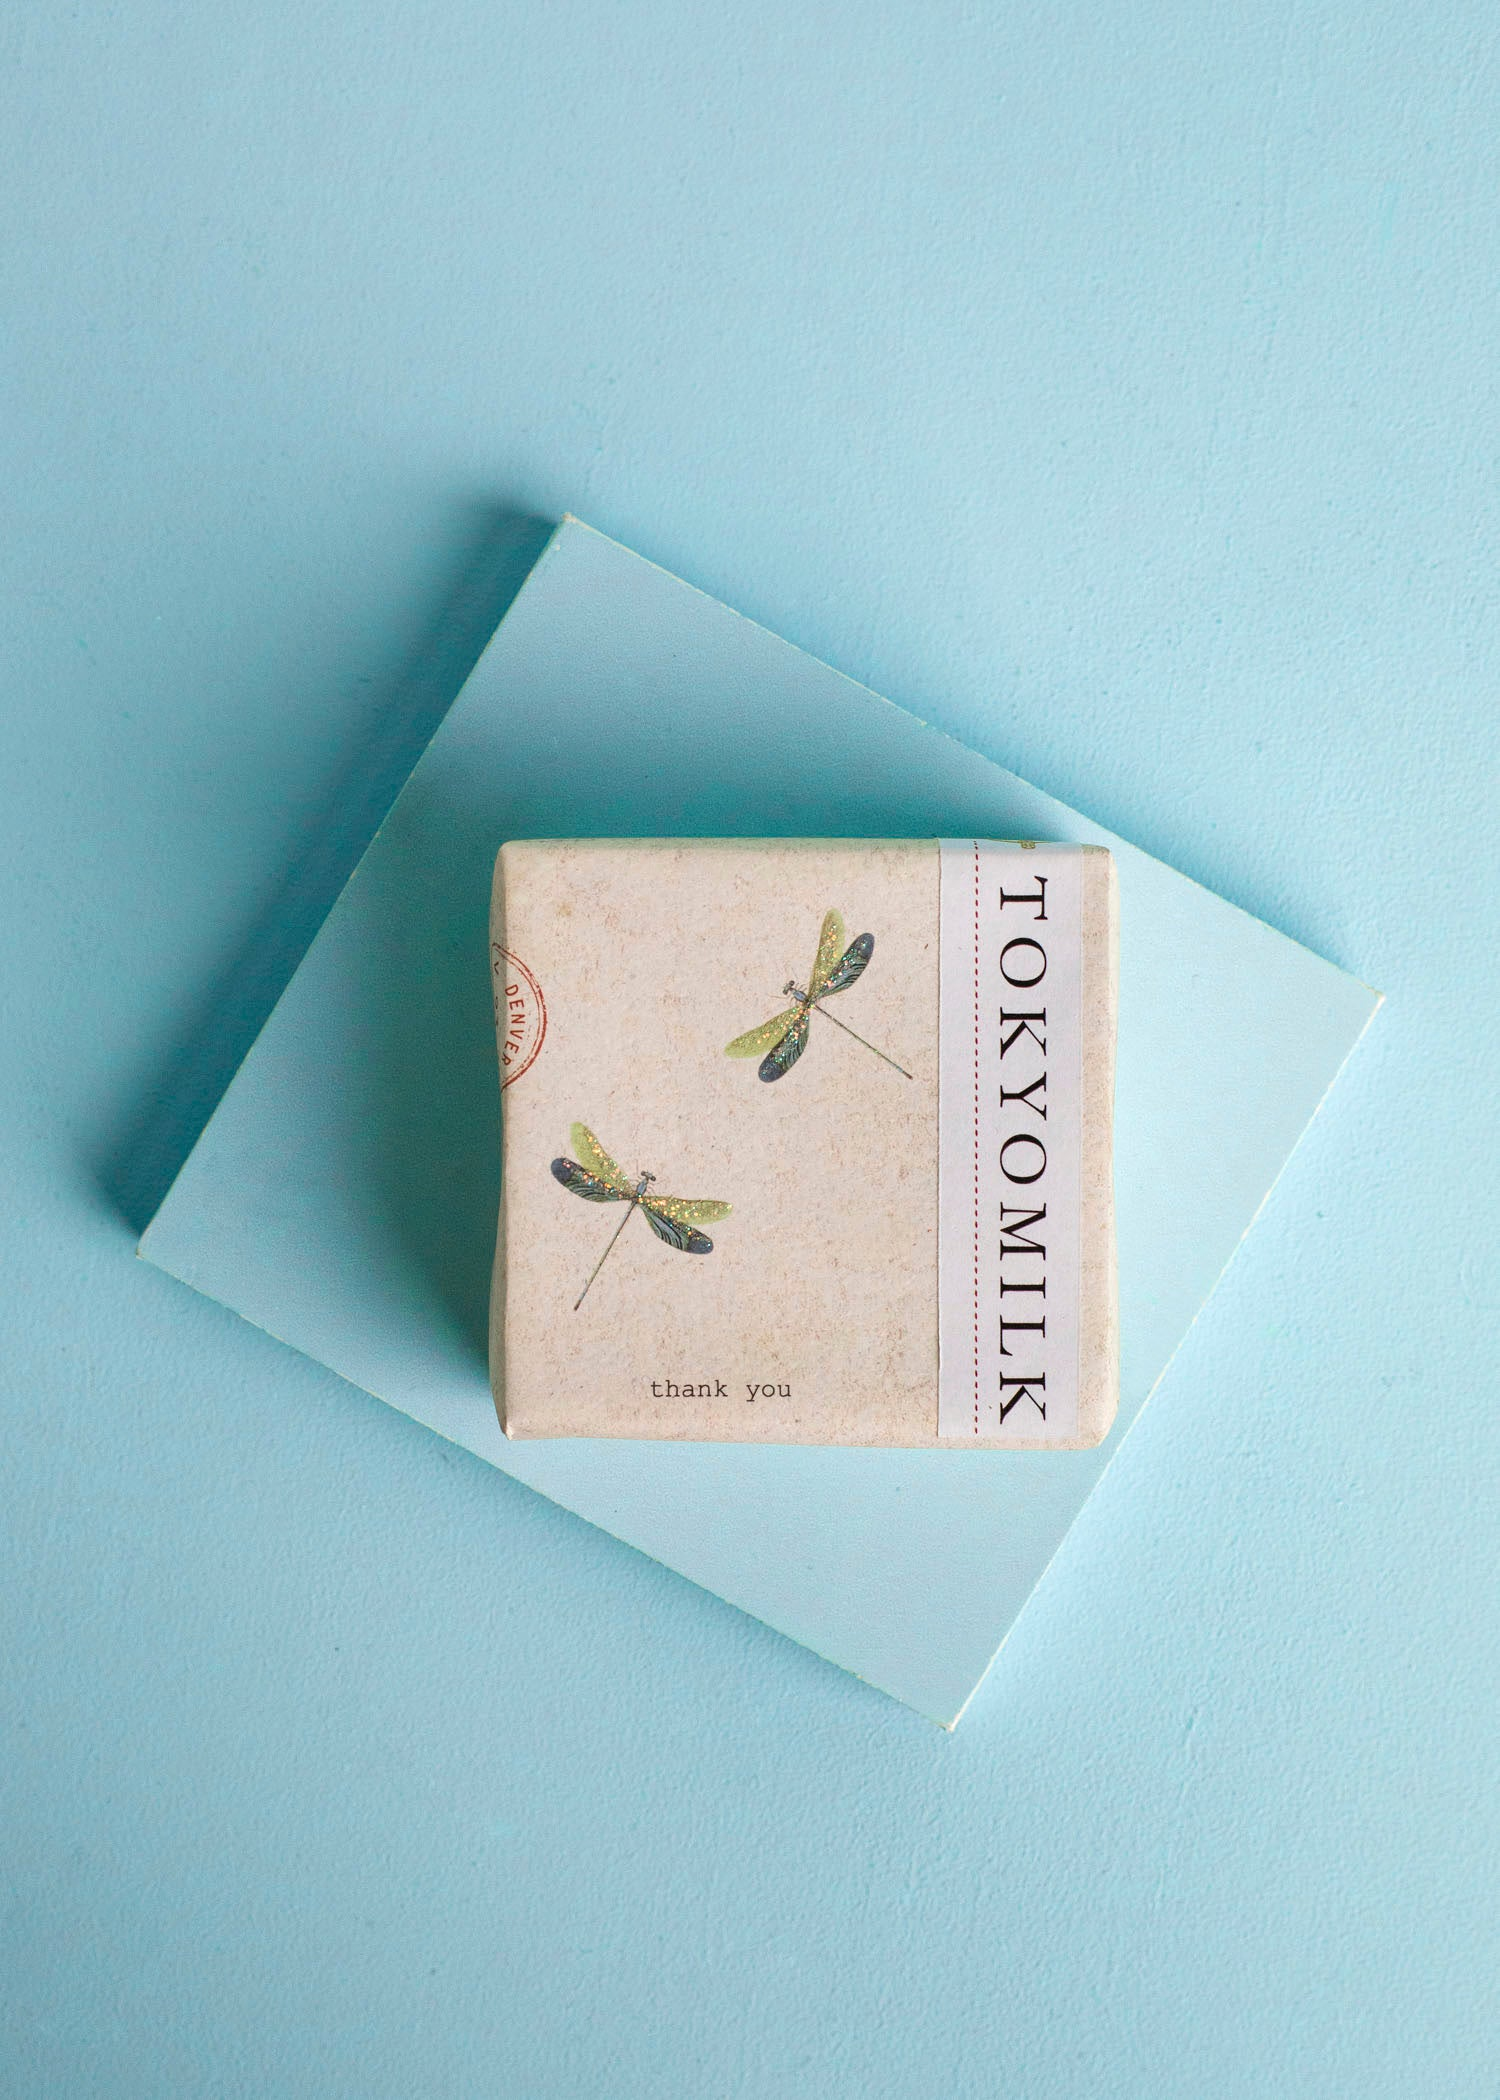 Thank You (Dragonfly) Finest Perfumed Soap